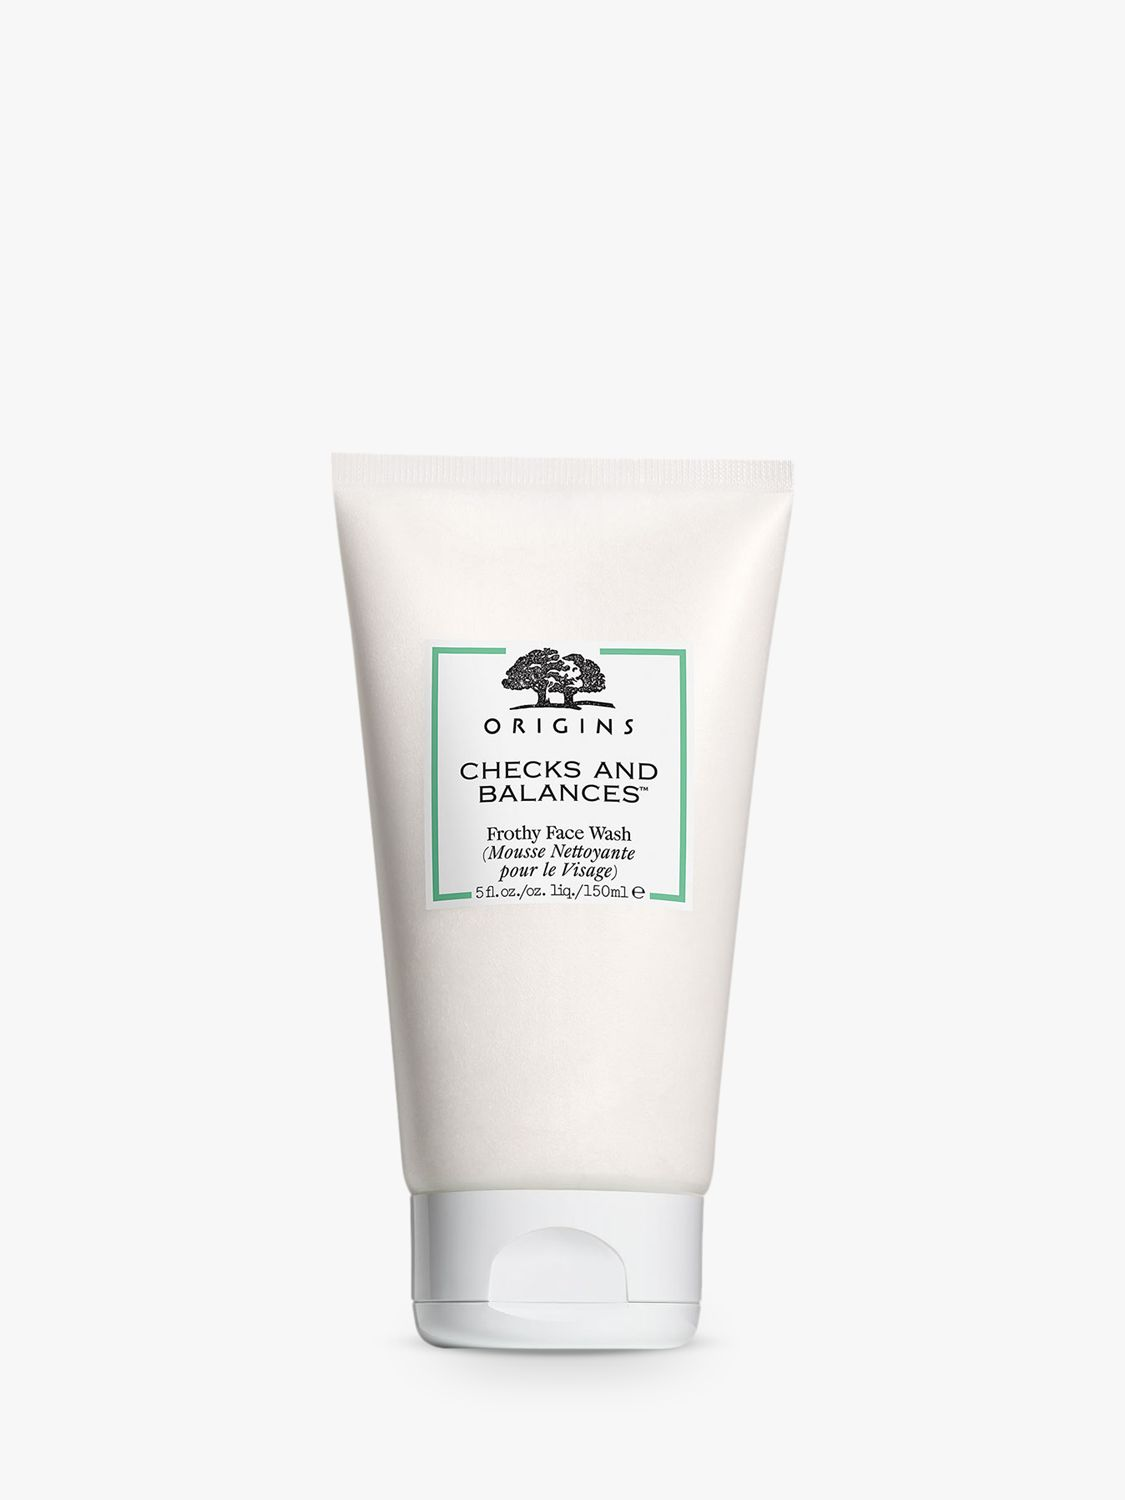 Origins Origins Checks And Balances™ Frothy Face Wash